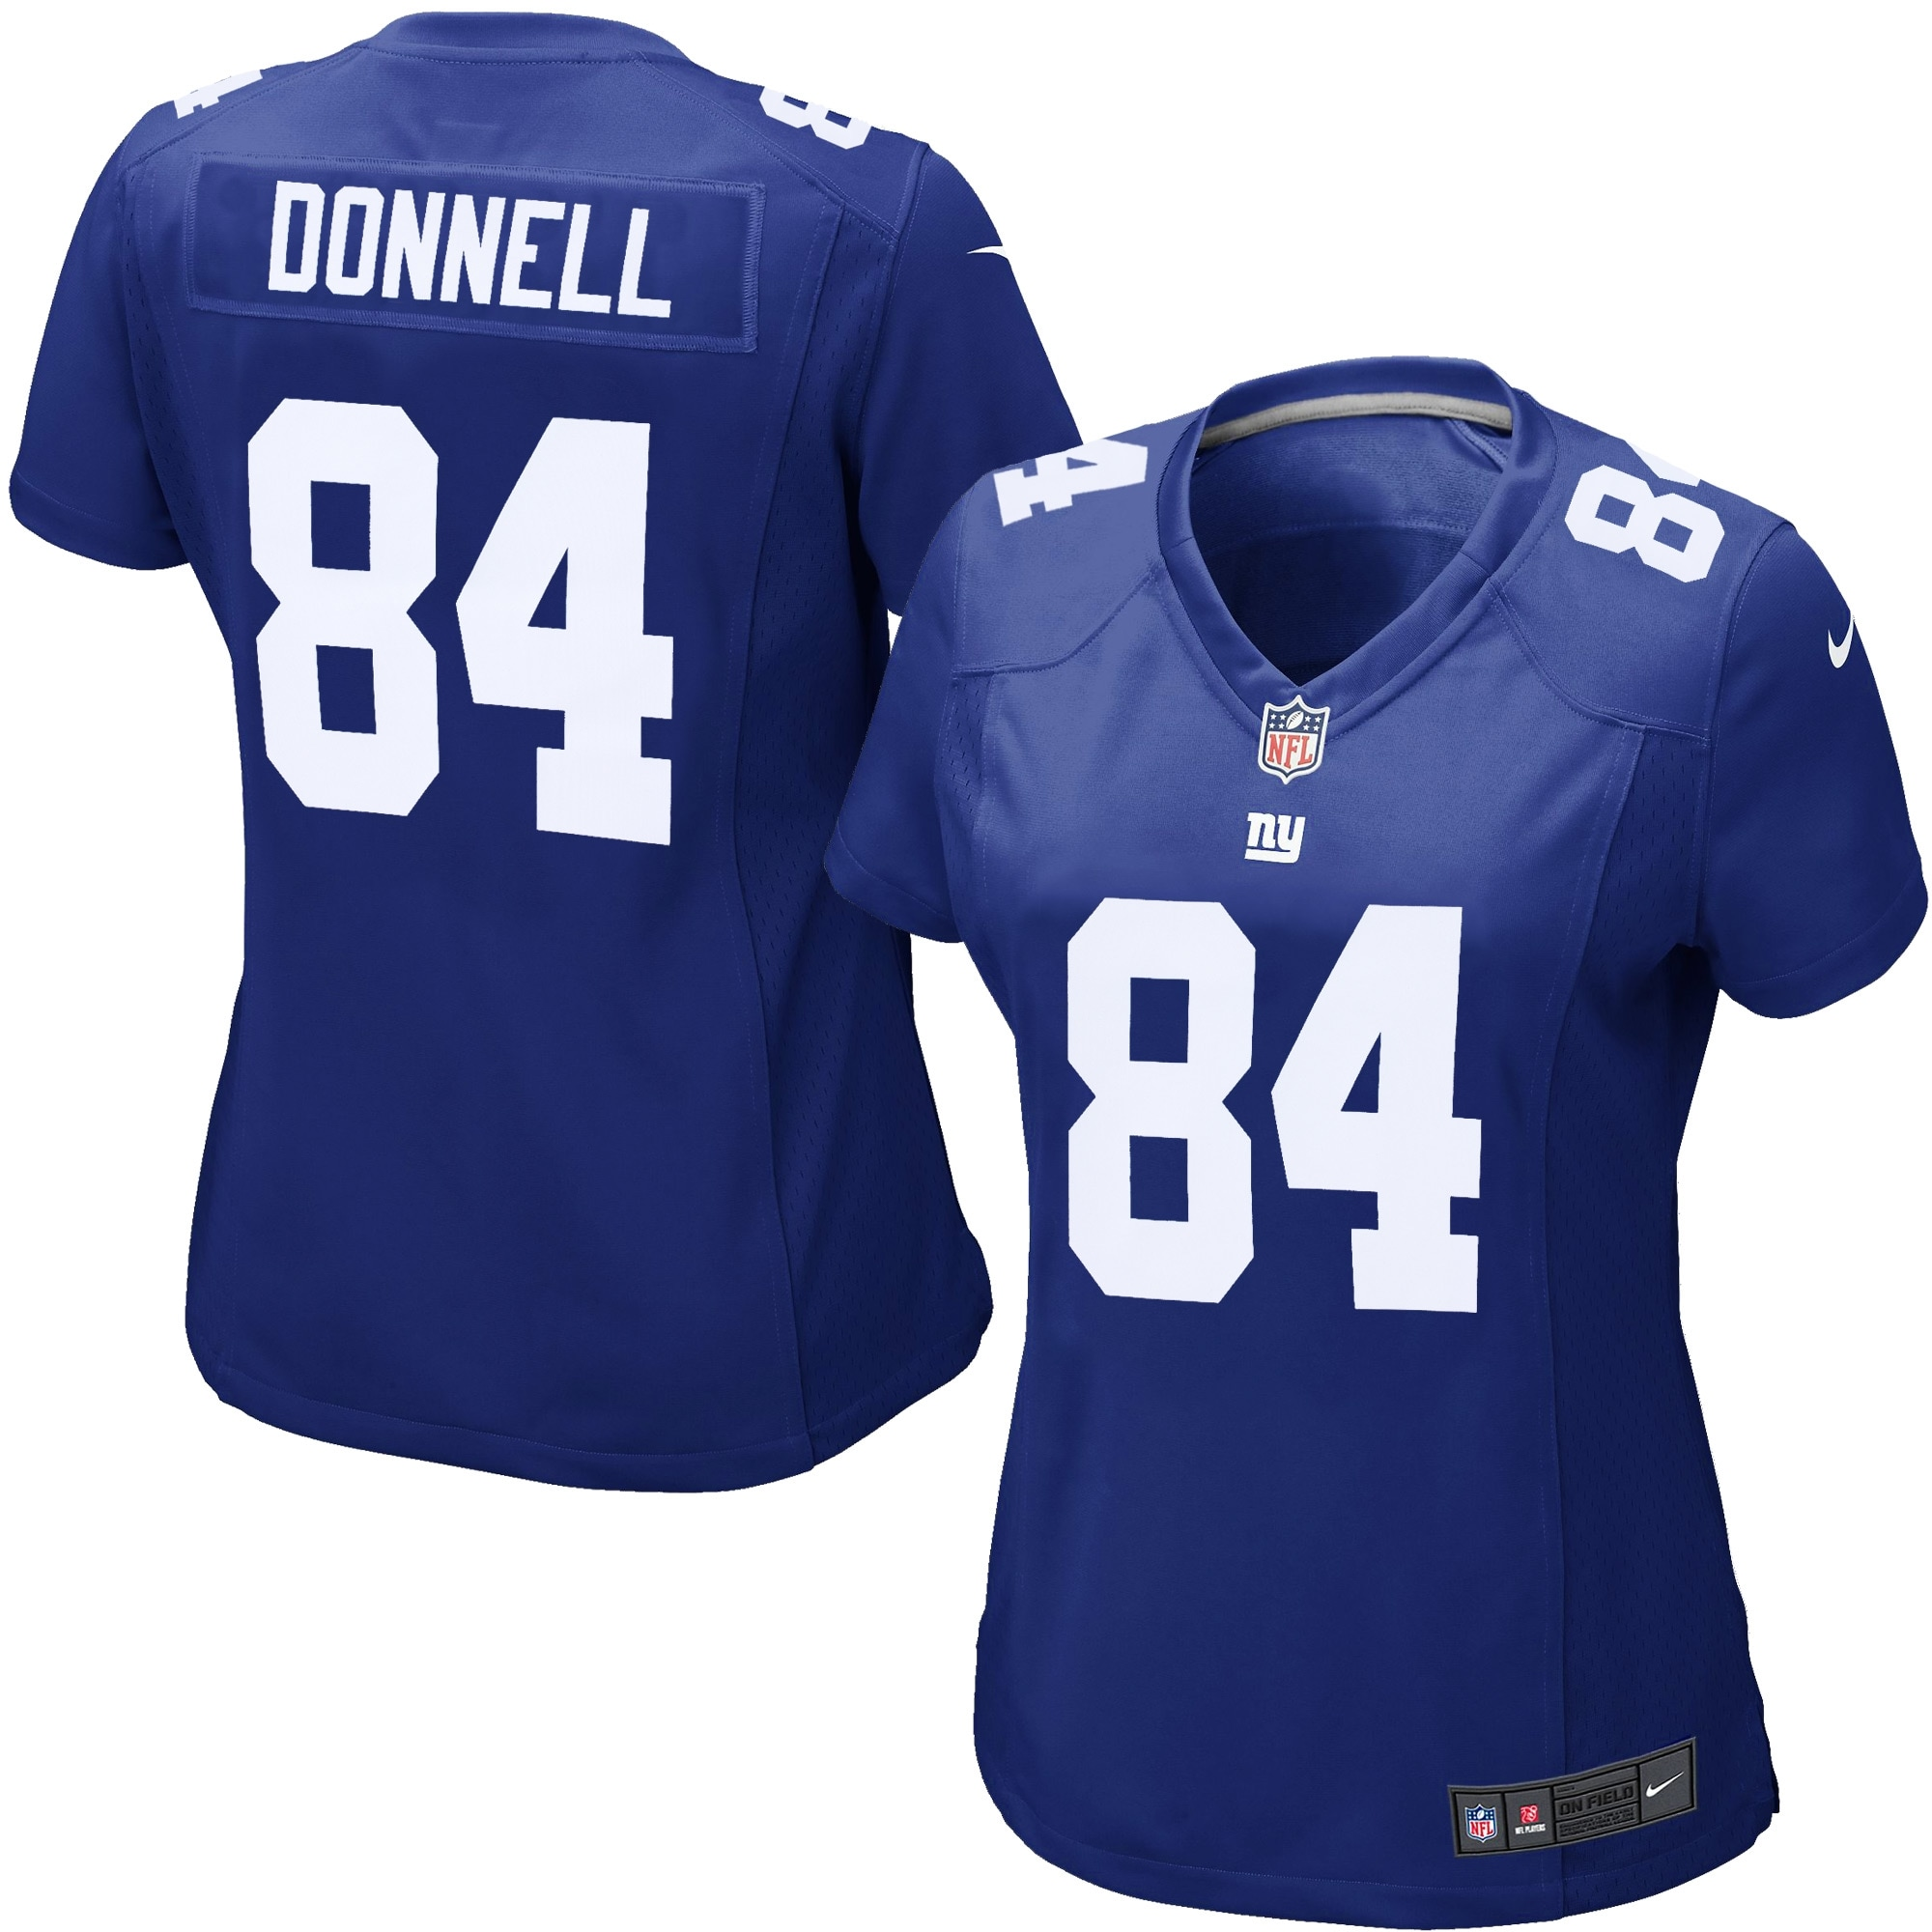 Larry Donnell New York Giants Nike Game Jersey - Royal Blue - - Walmart.com